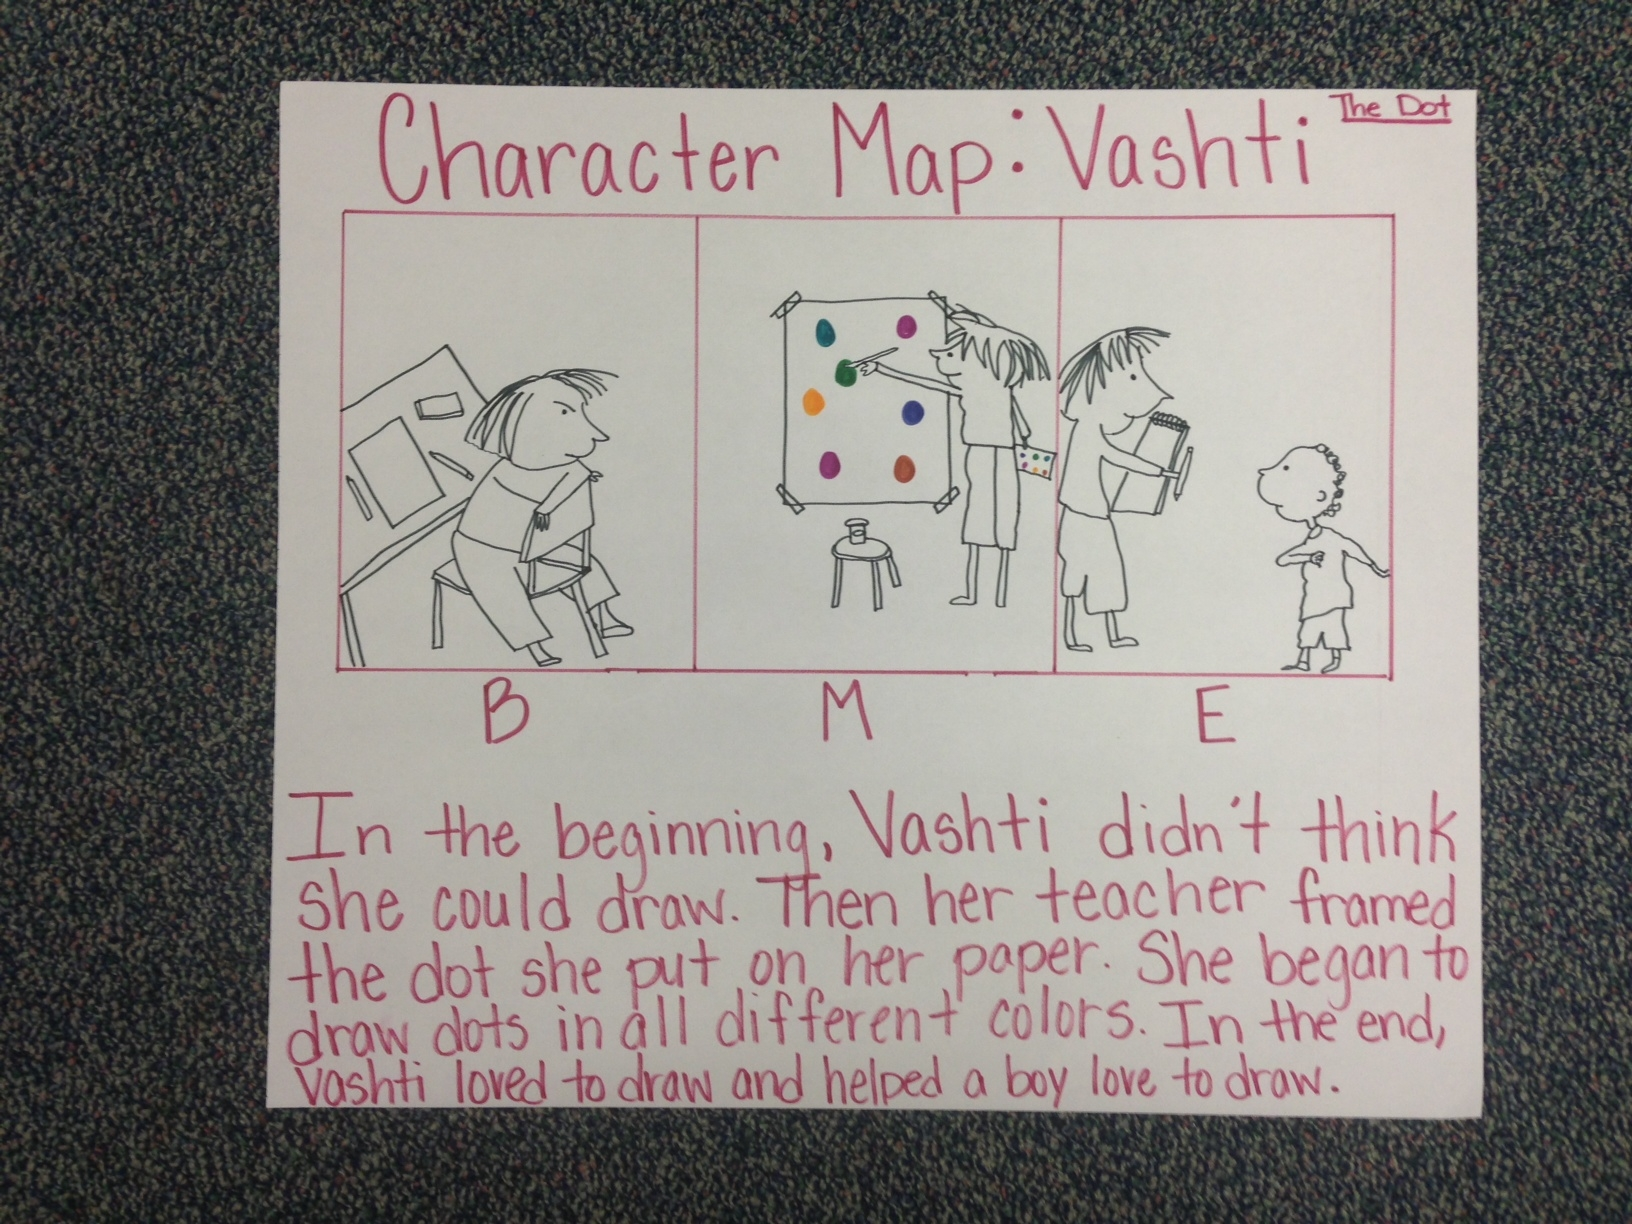 Character Change Map of Vashti